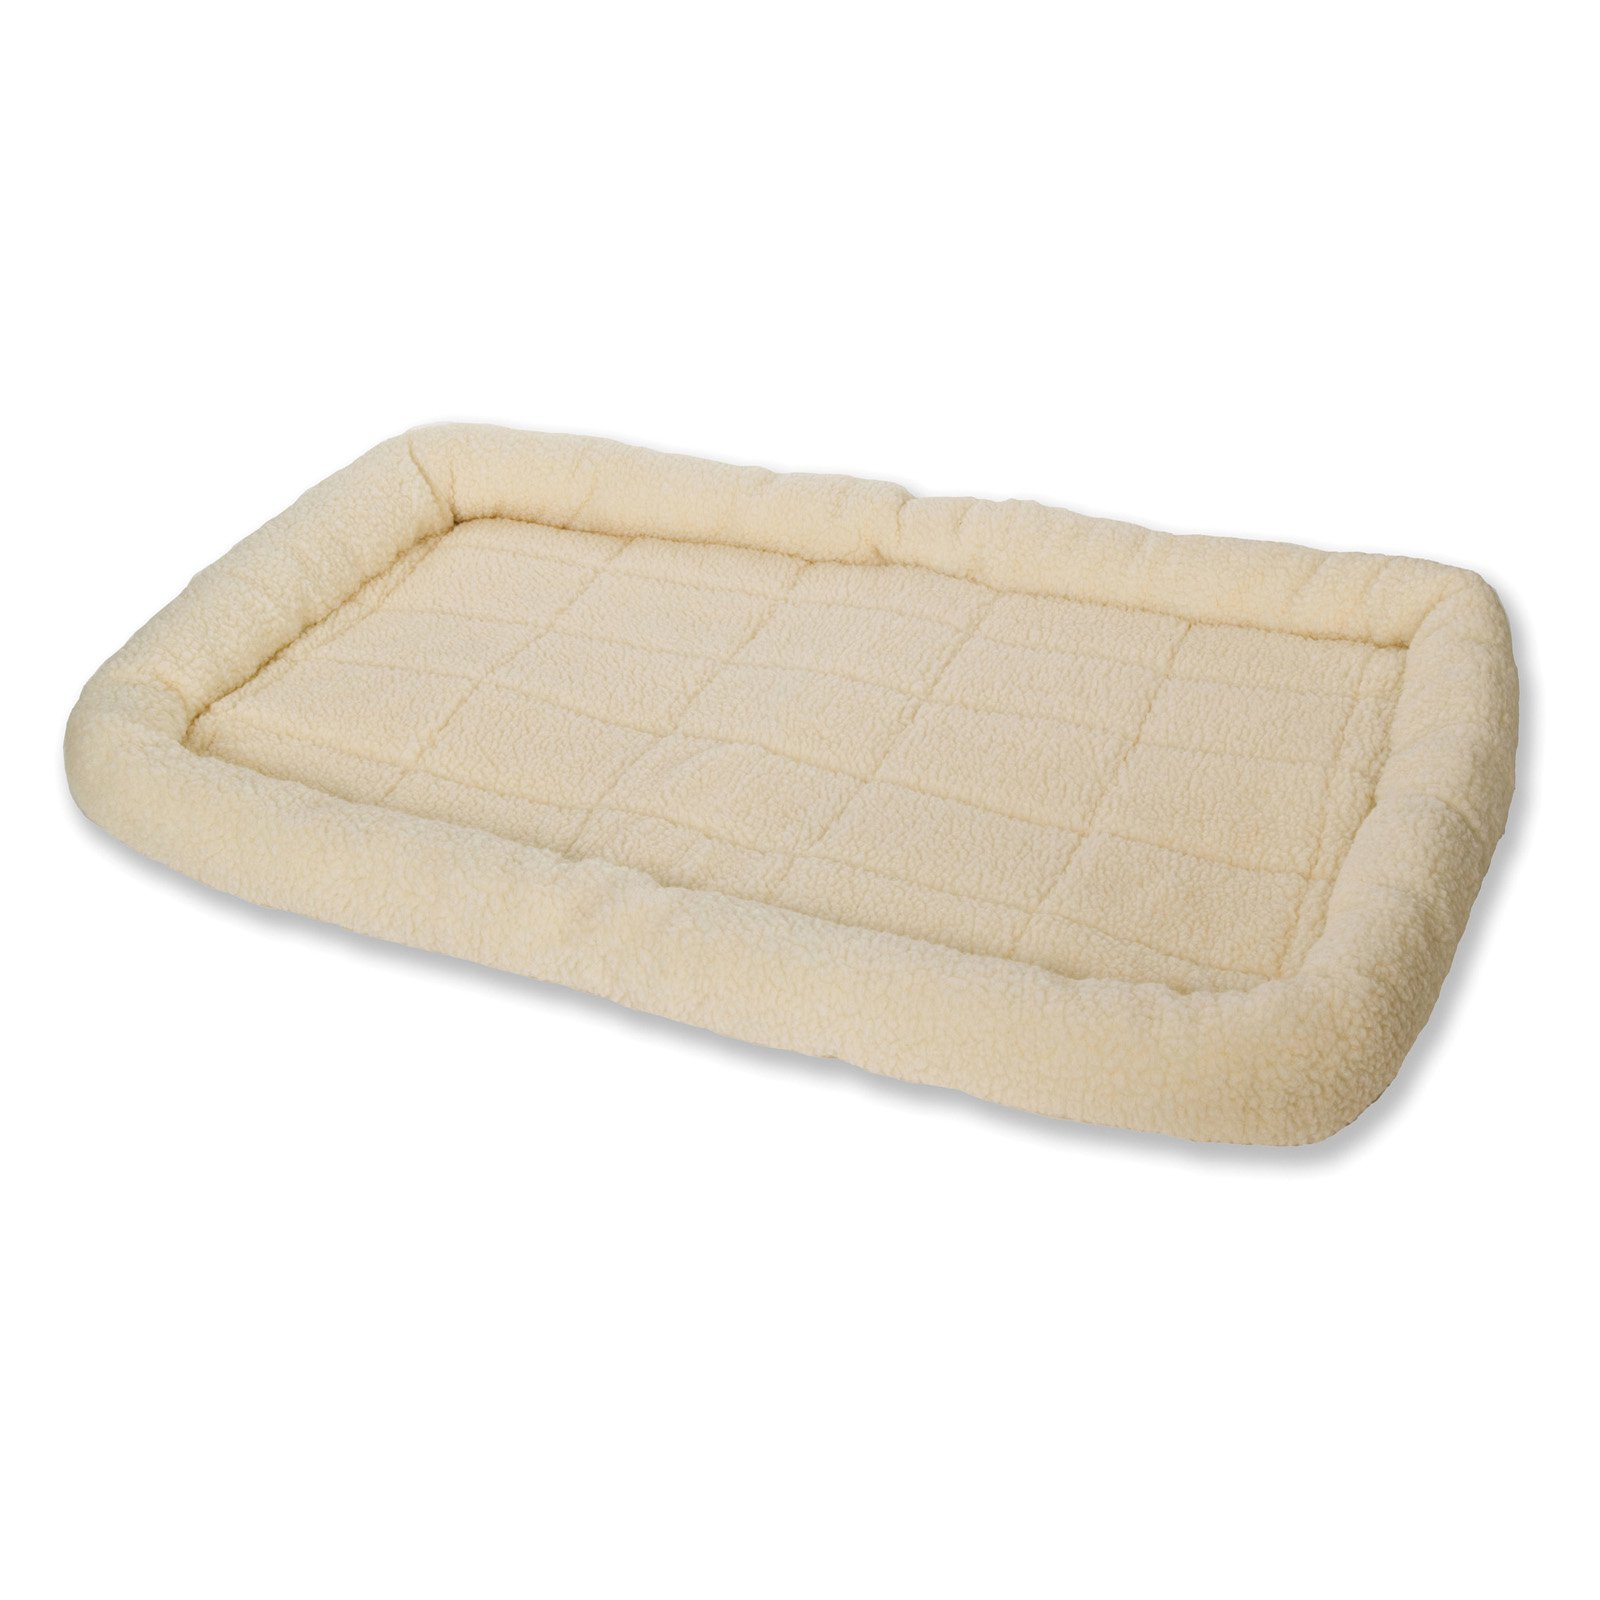 Miller Little Giant Pet Lodge Fleece Pet Bed, 35 Inch Large Size, Cream